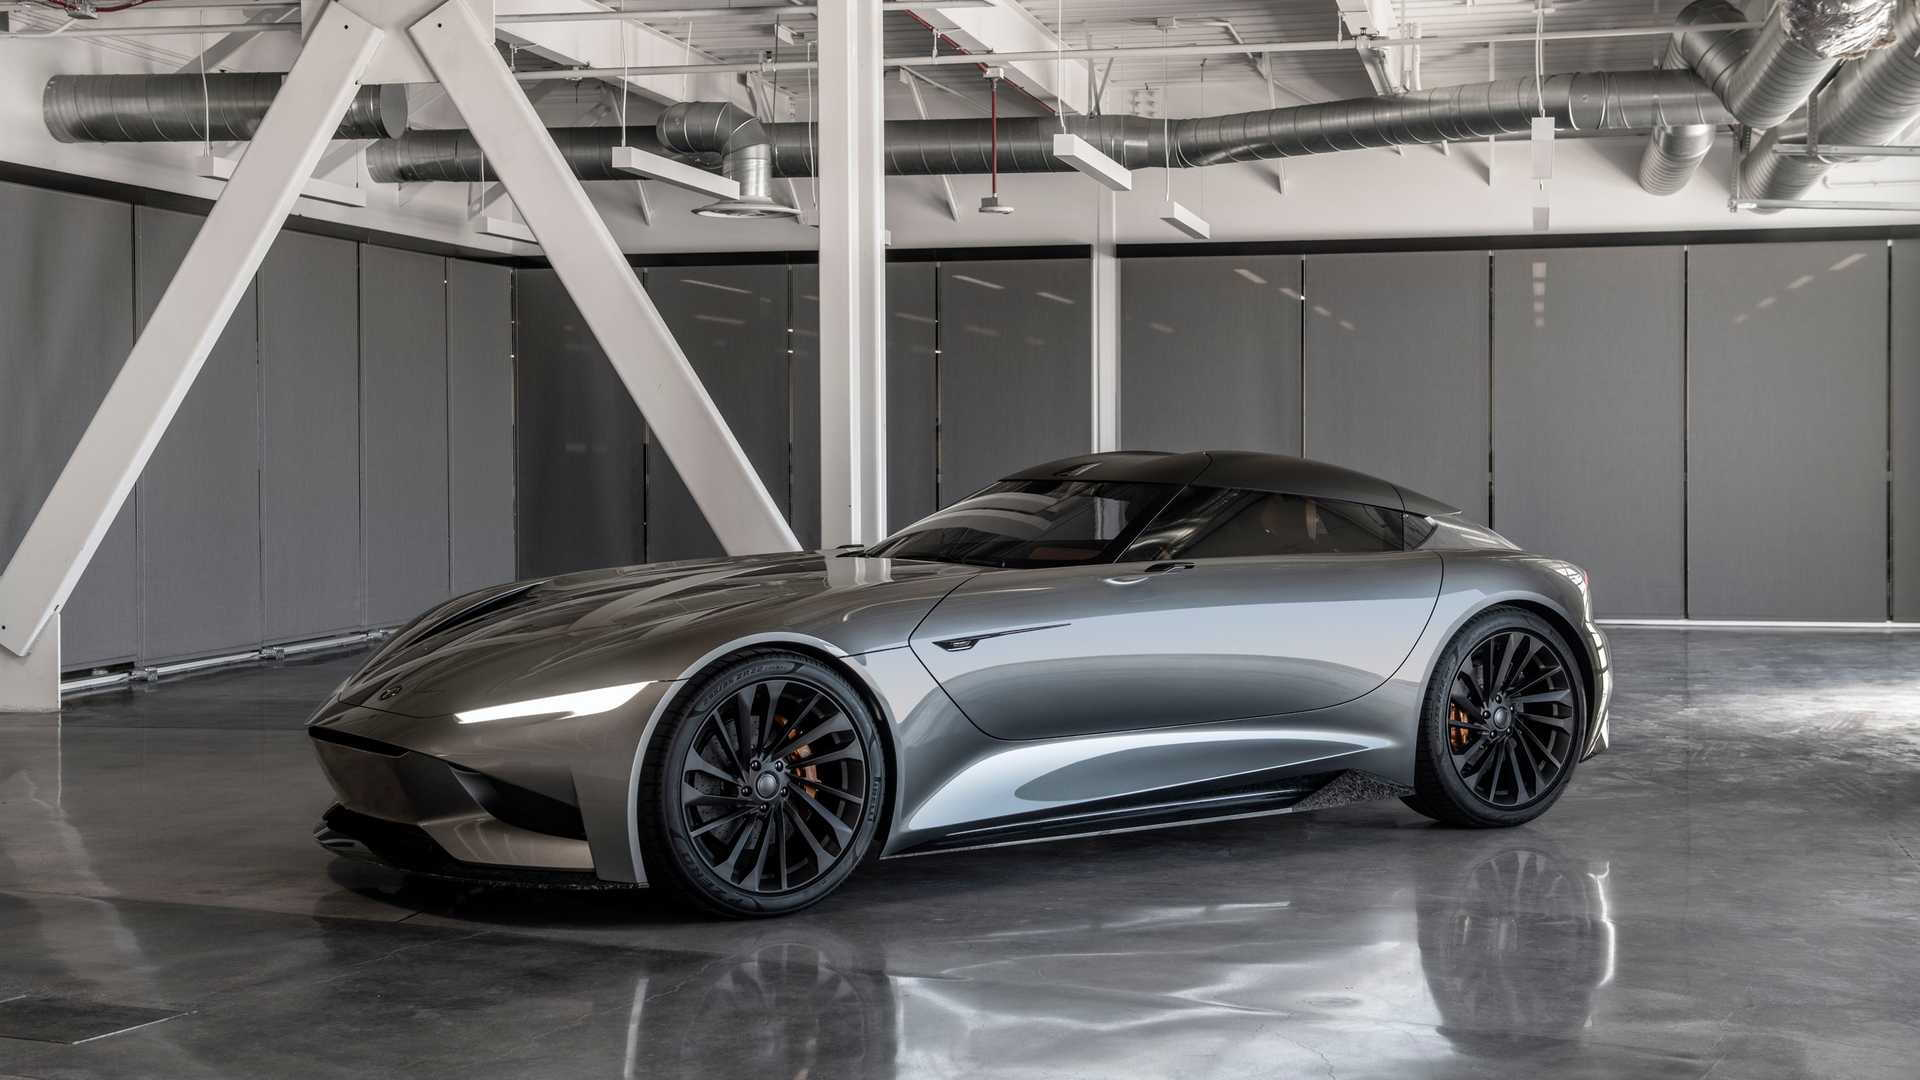 Karma Stuns In LA With 1100-HP SC2 Concept Car